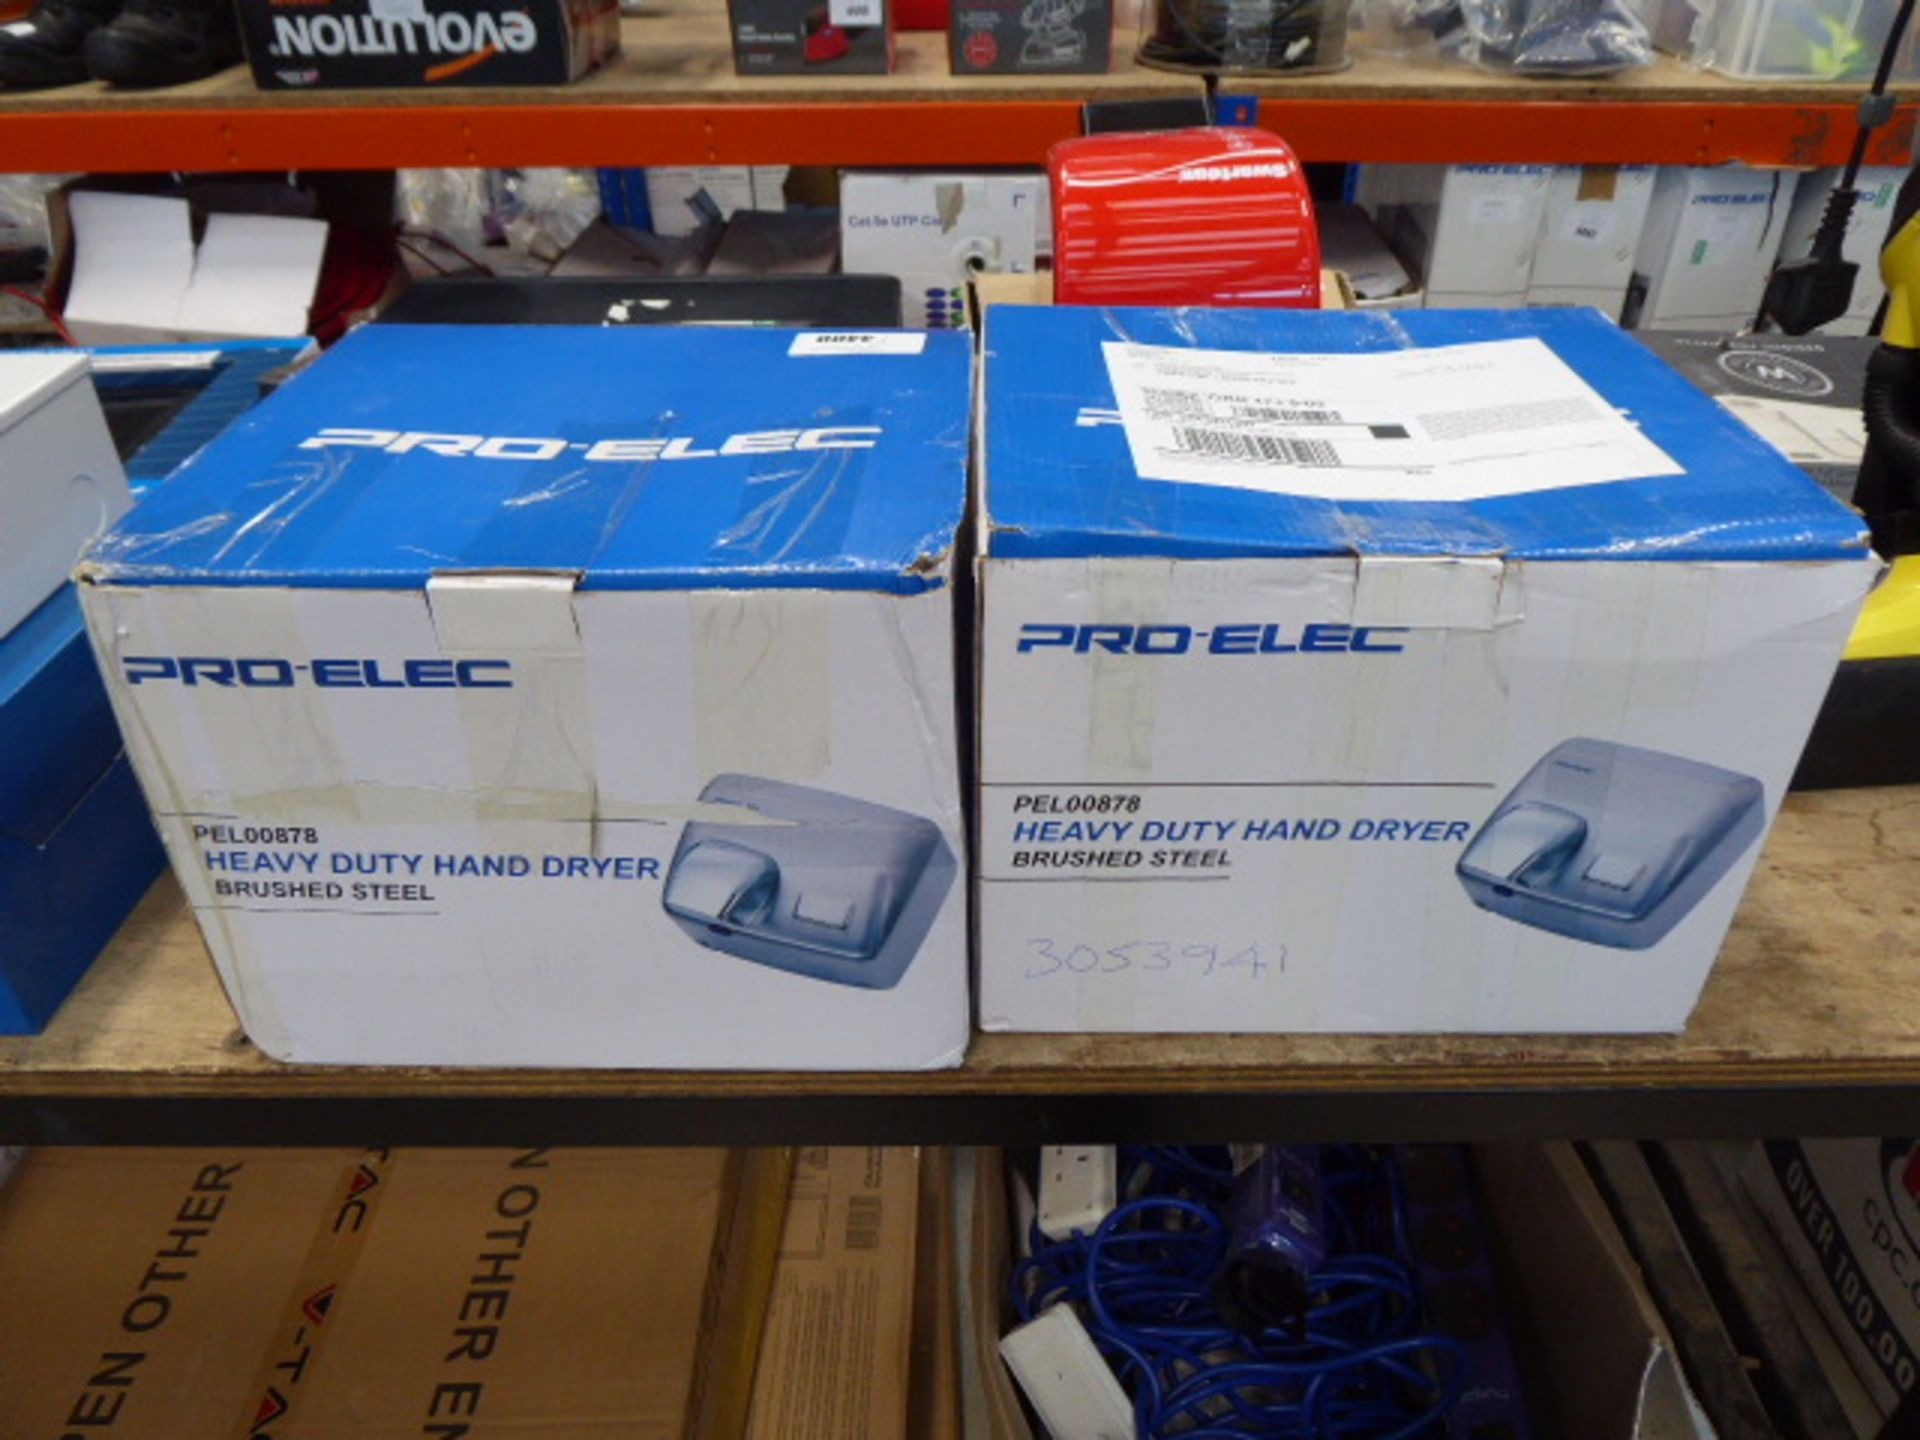 2 boxed heavy duty hand dryers - Image 2 of 2